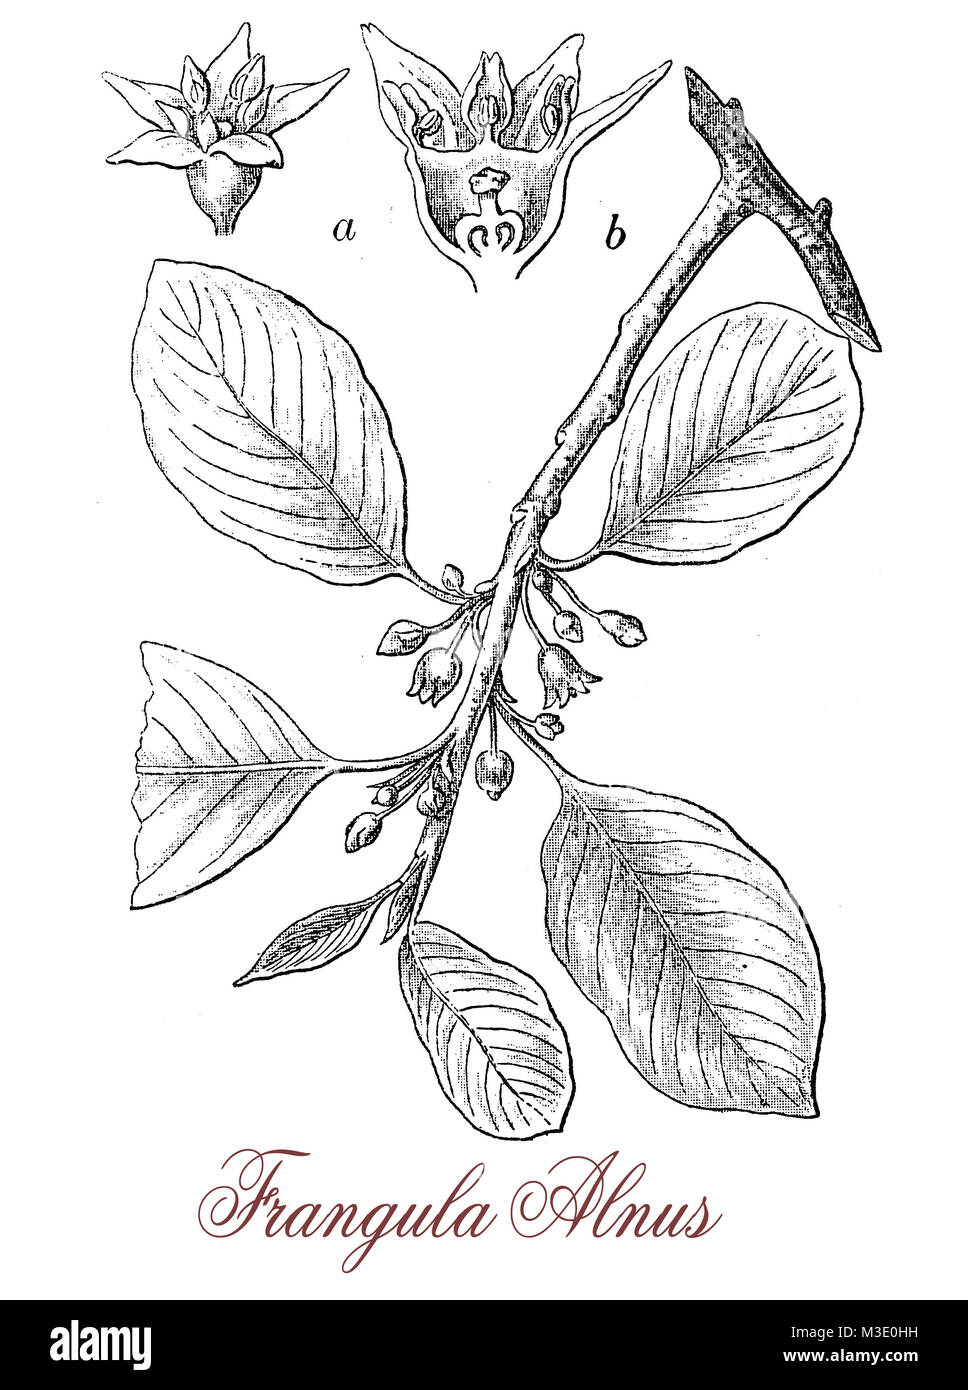 vintage engraving of frangula alnus or alder buckthorn, non-spiny shrub with small flowers and red berries ripening - Stock Image